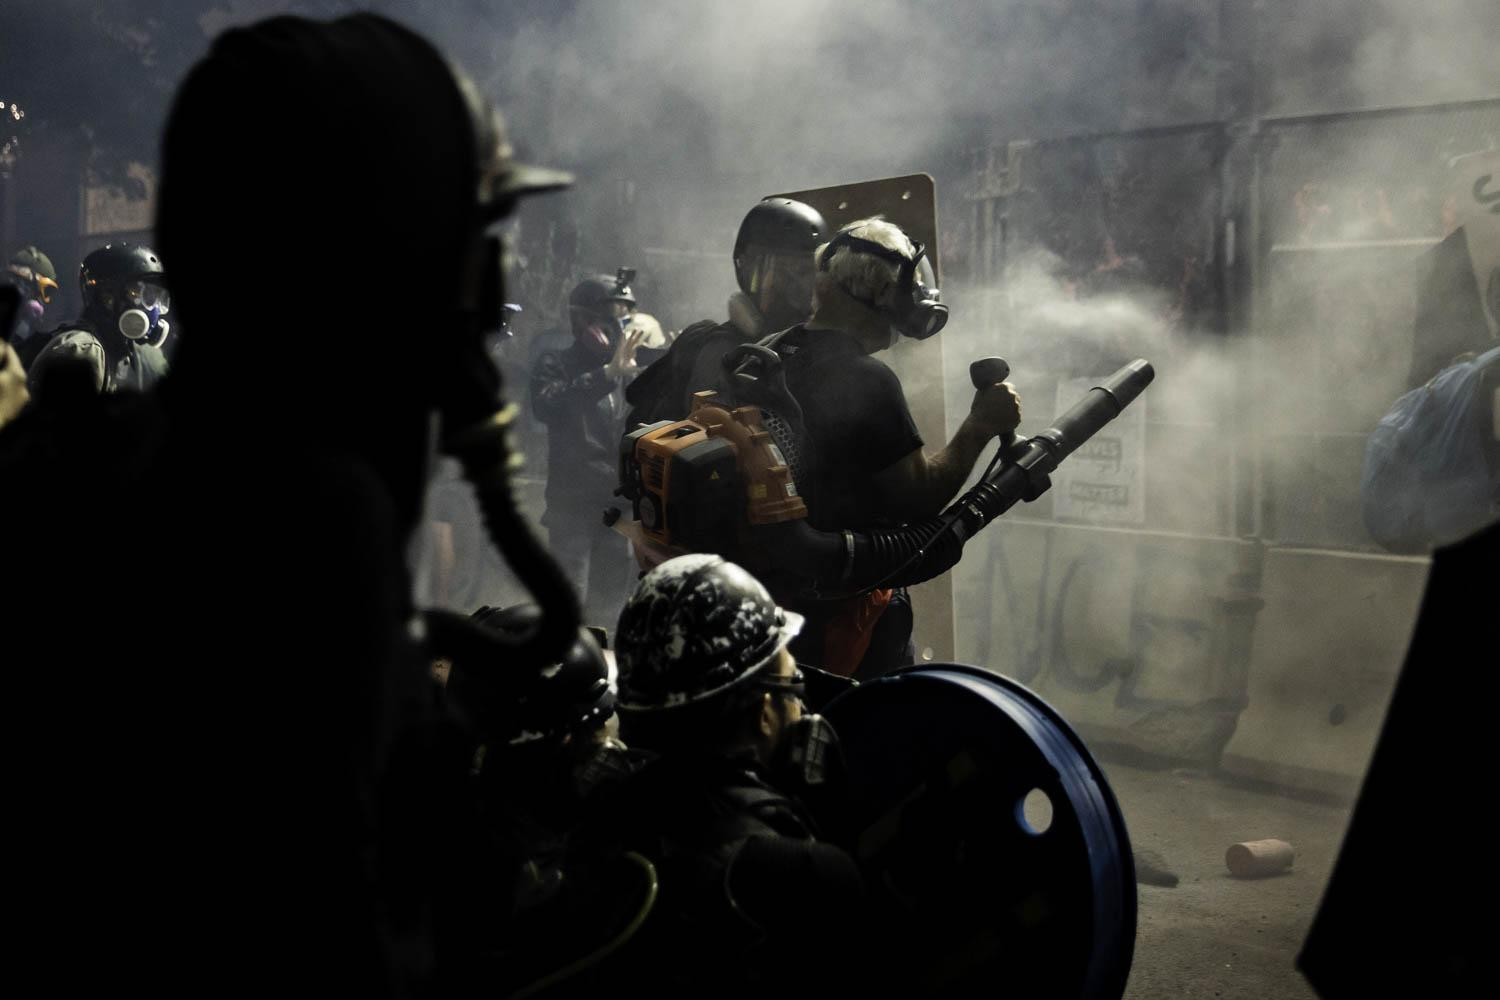 A man in a gas mask and with a leafblower stands next to a police barricade as tear gas fills the air